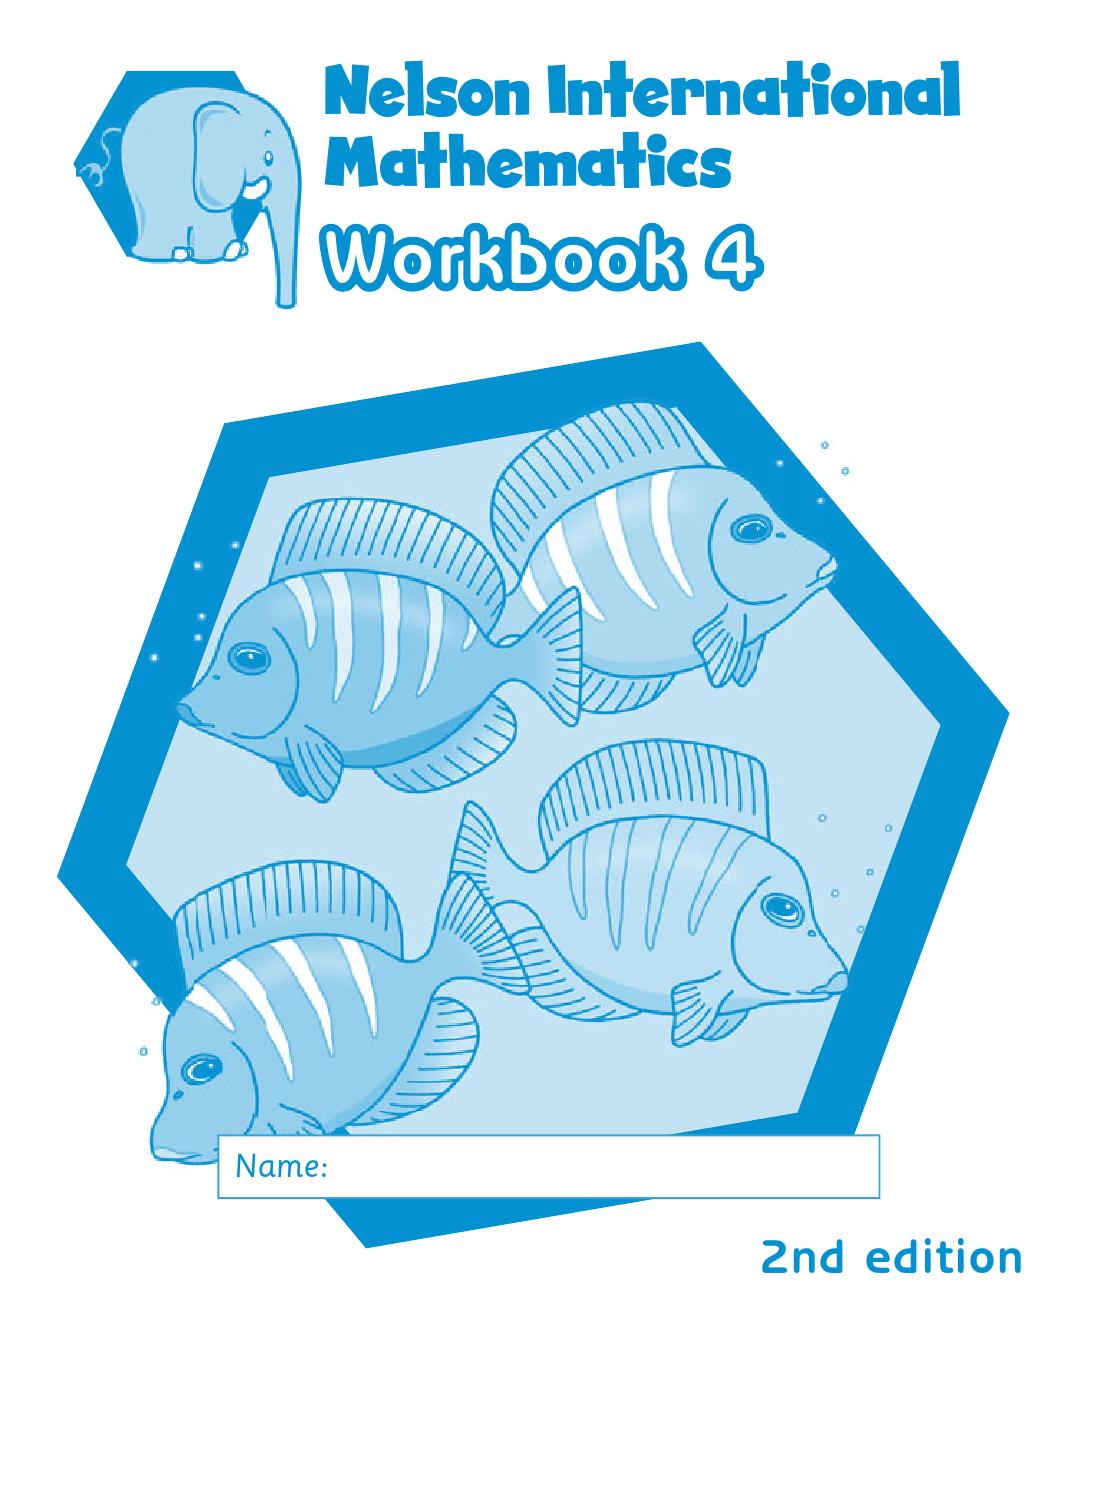 Nelson international maths workbook 4 answers by hany mufeid - issuu